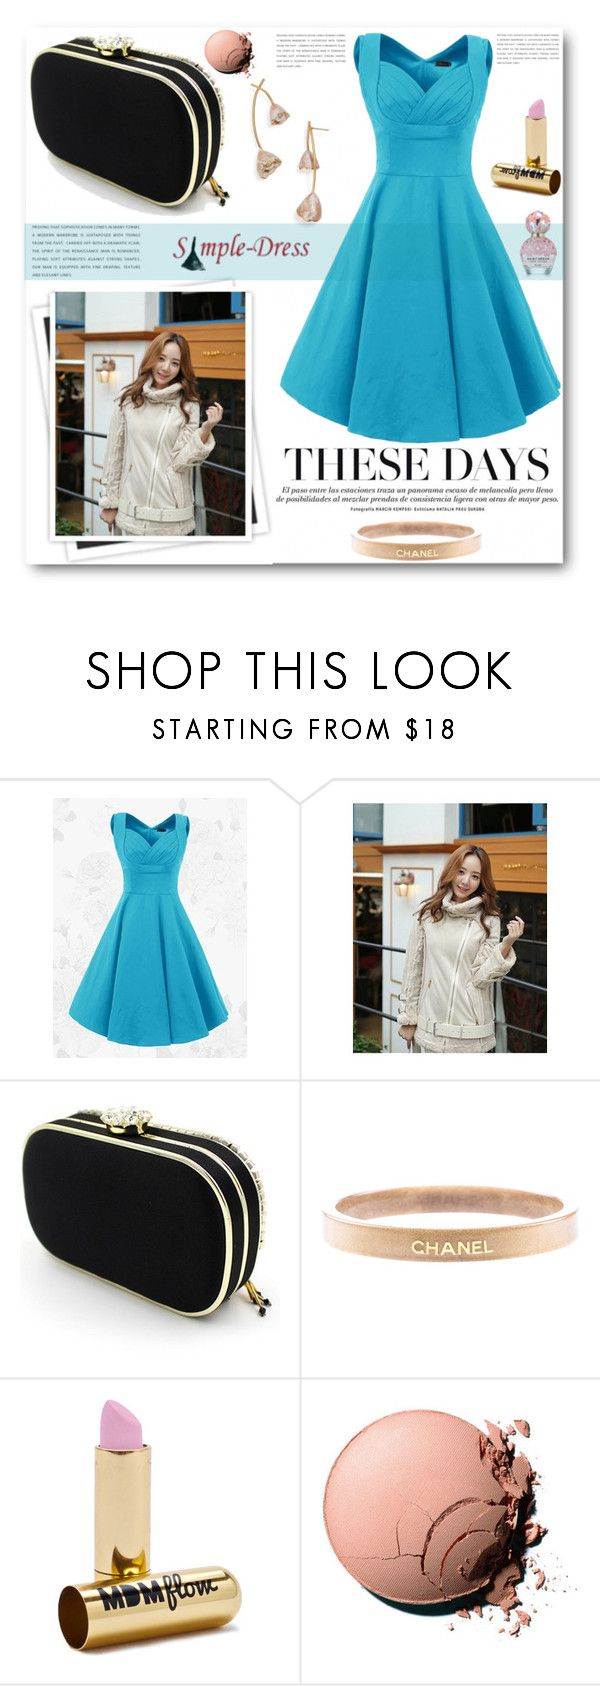 """""""simple-dress"""" by angelstar92 ❤ liked on Polyvore featuring GALA, Chanel, MDMflow, Marc Jacobs, vintage, fab, dress and simpledress"""